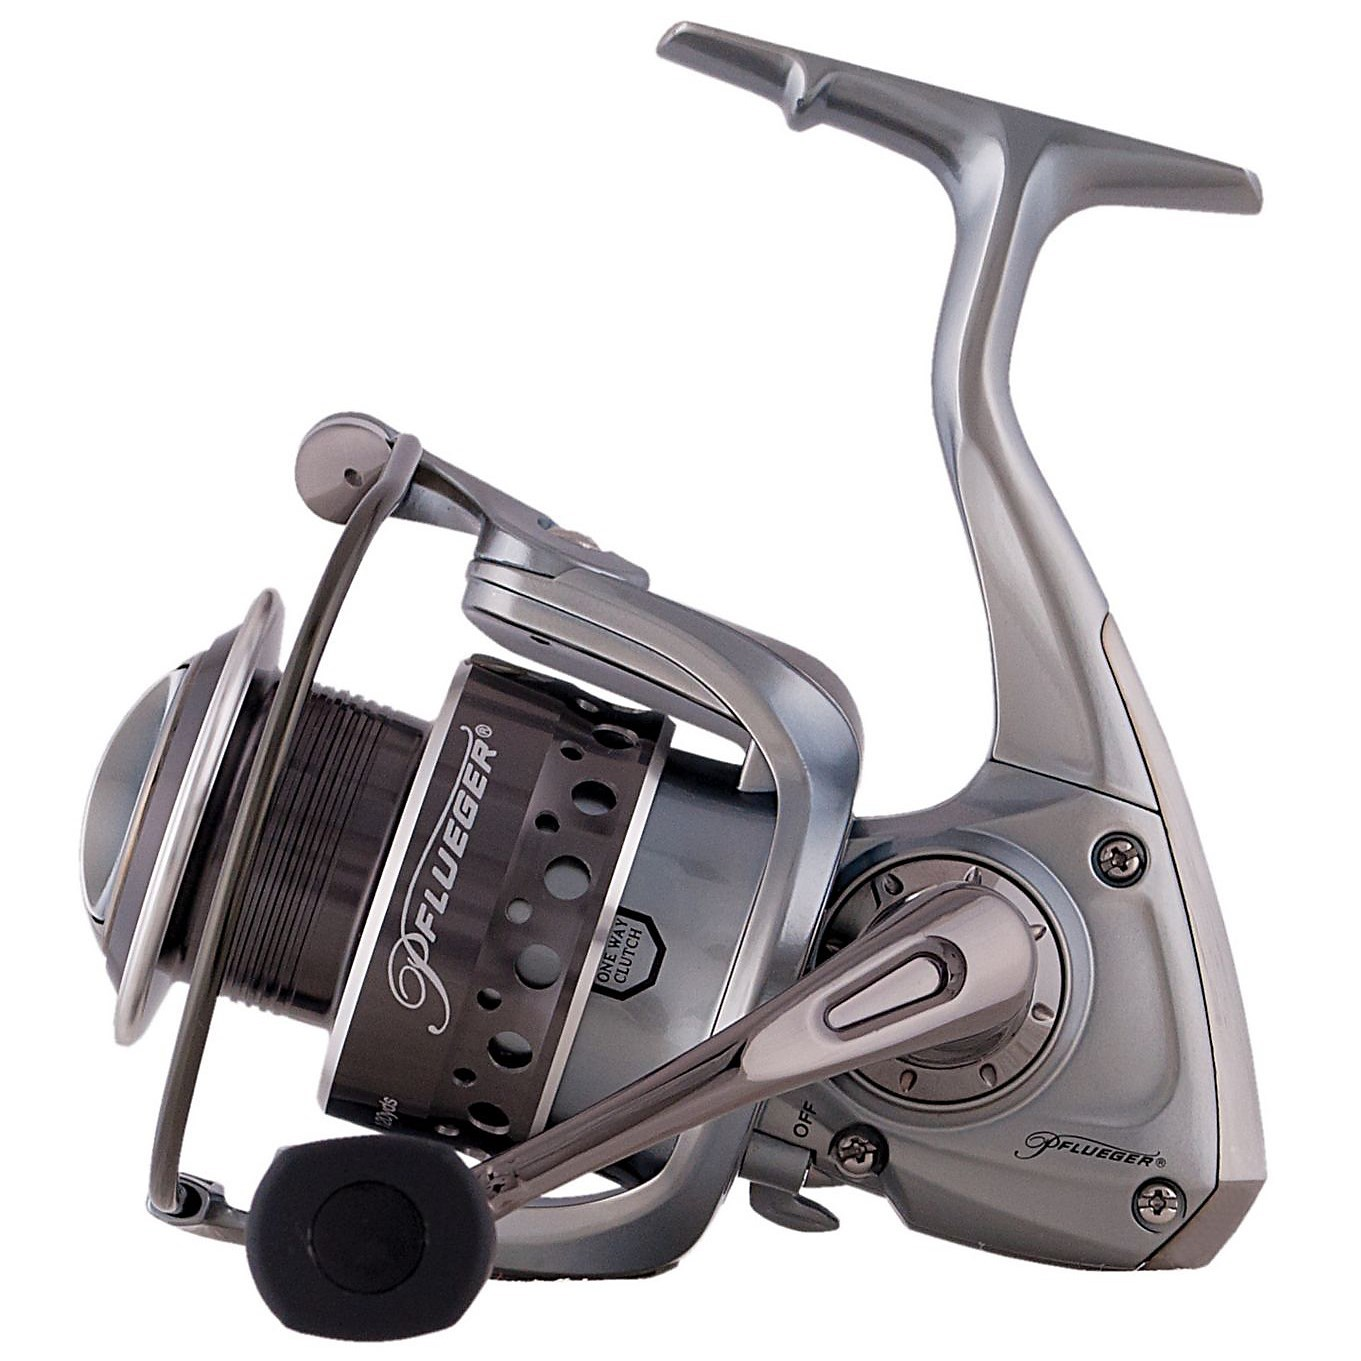 Pflueger purist spinning rod and reel combo 9739u save 30 for Pflueger fishing rods